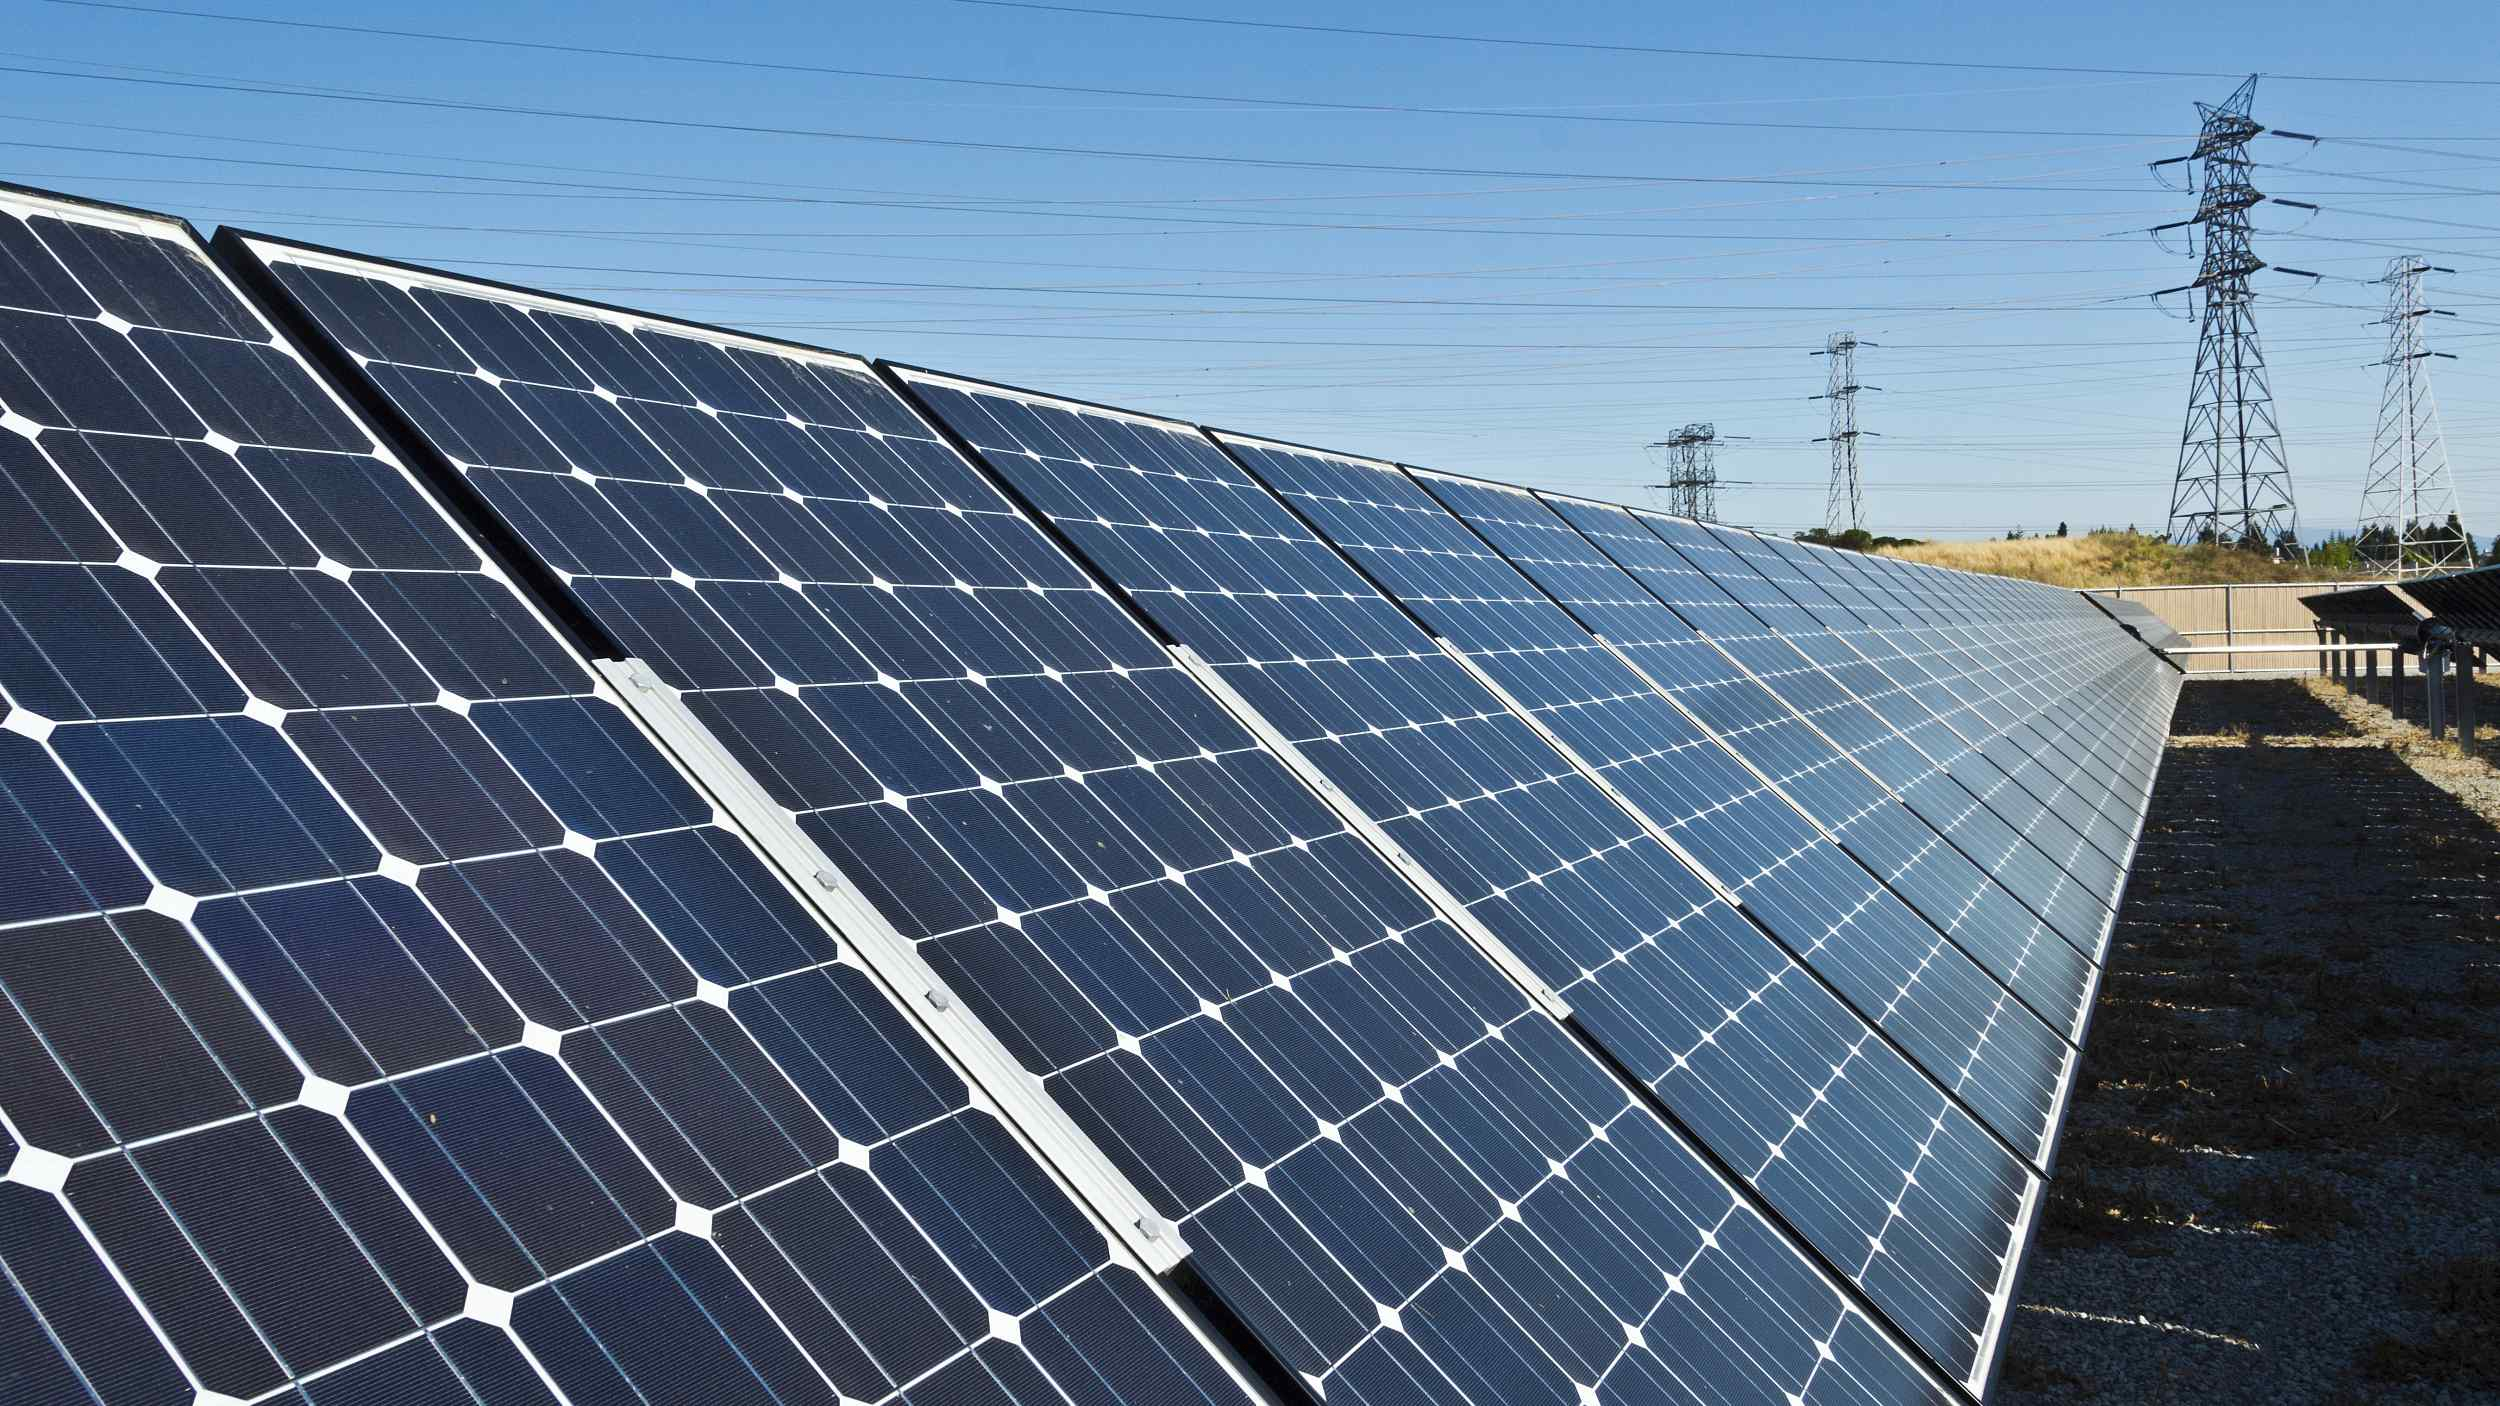 Solar panel leads 1 Solar panel leads Businesses - A Business's Standpoint